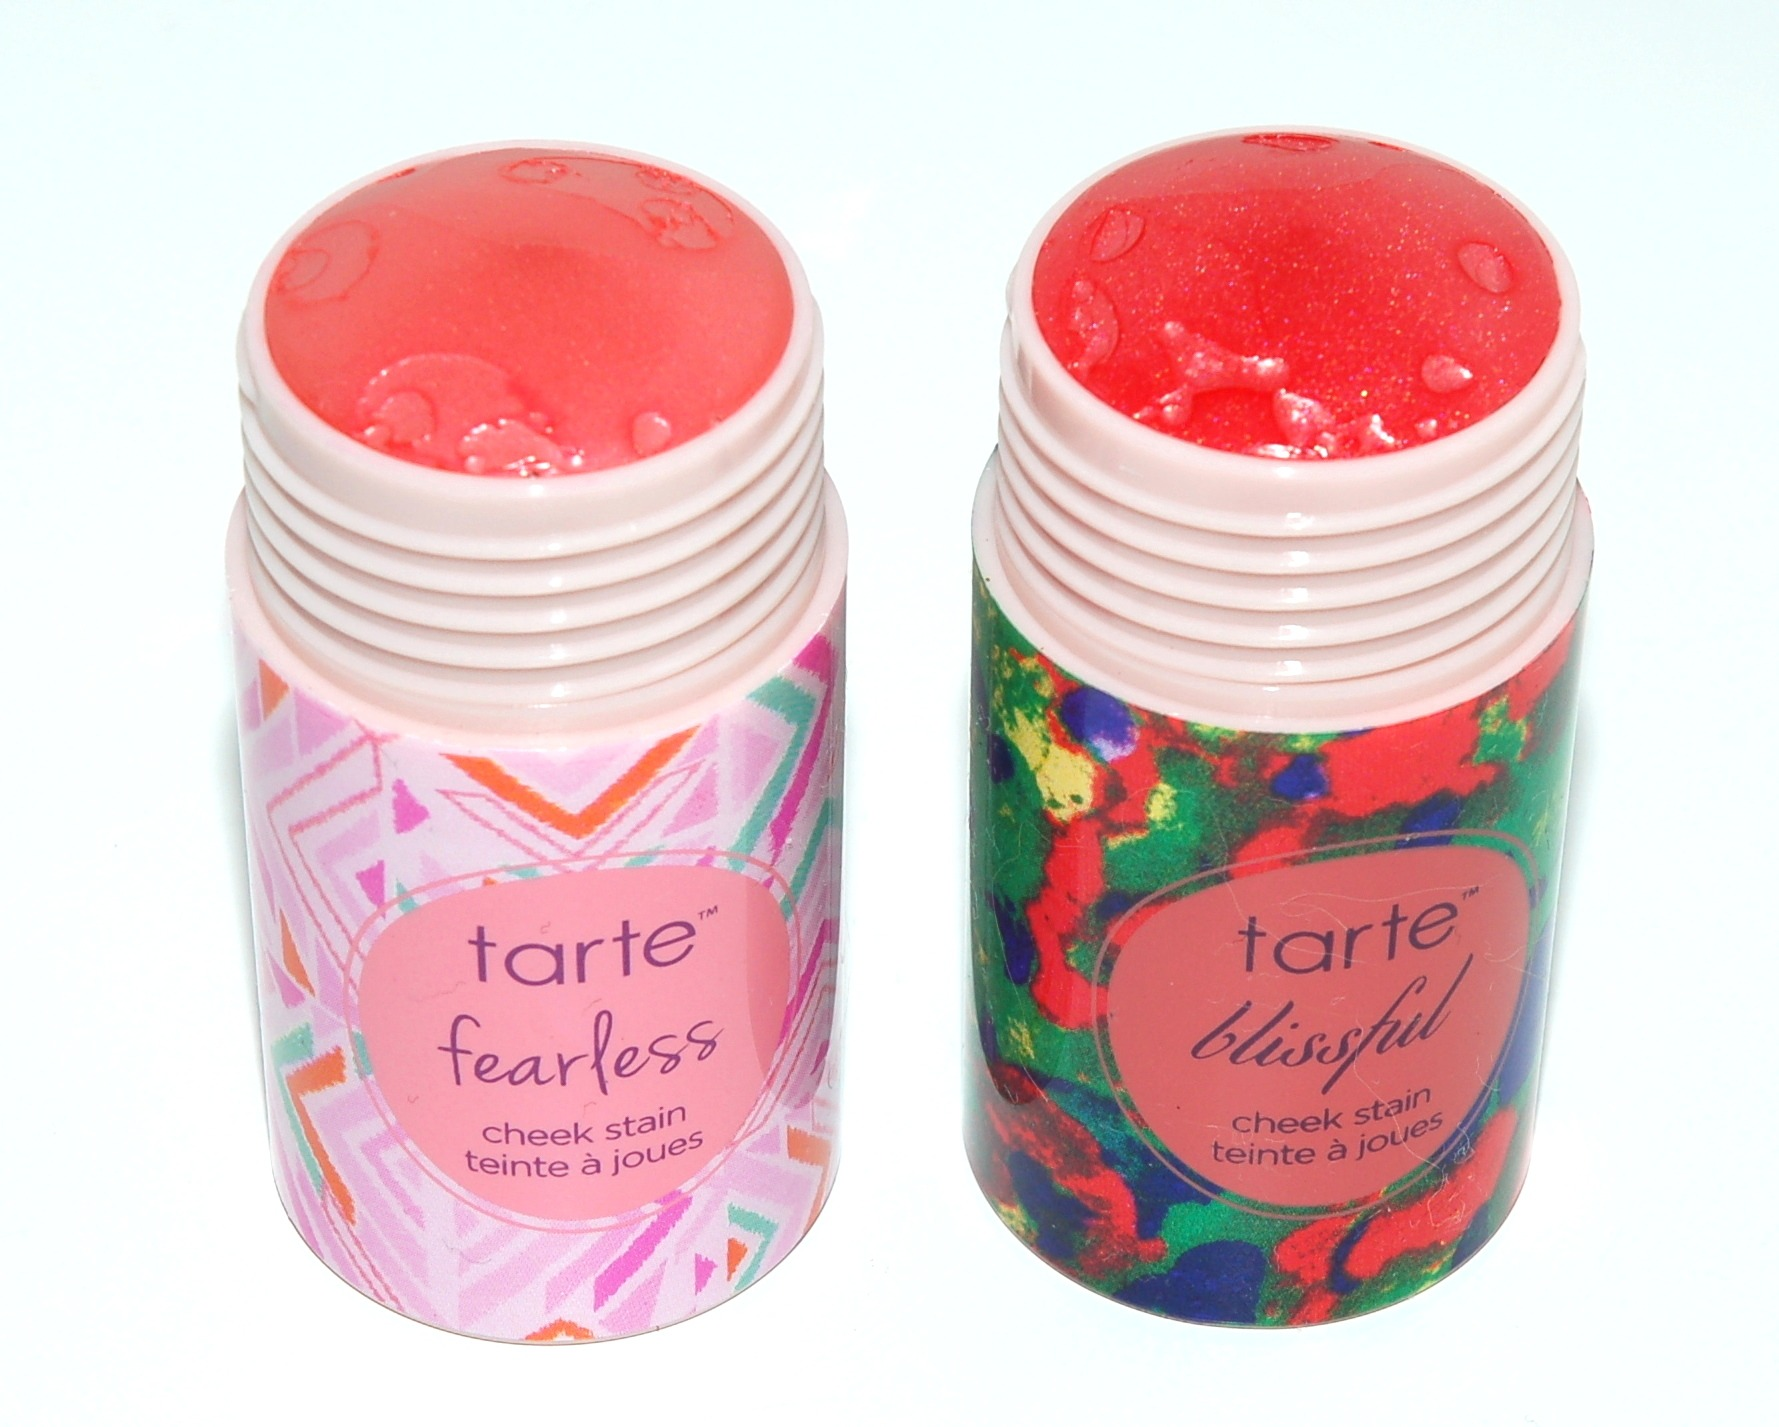 Tarte Cheek Stain Sale | Up to 70% Off | Best Deals Today